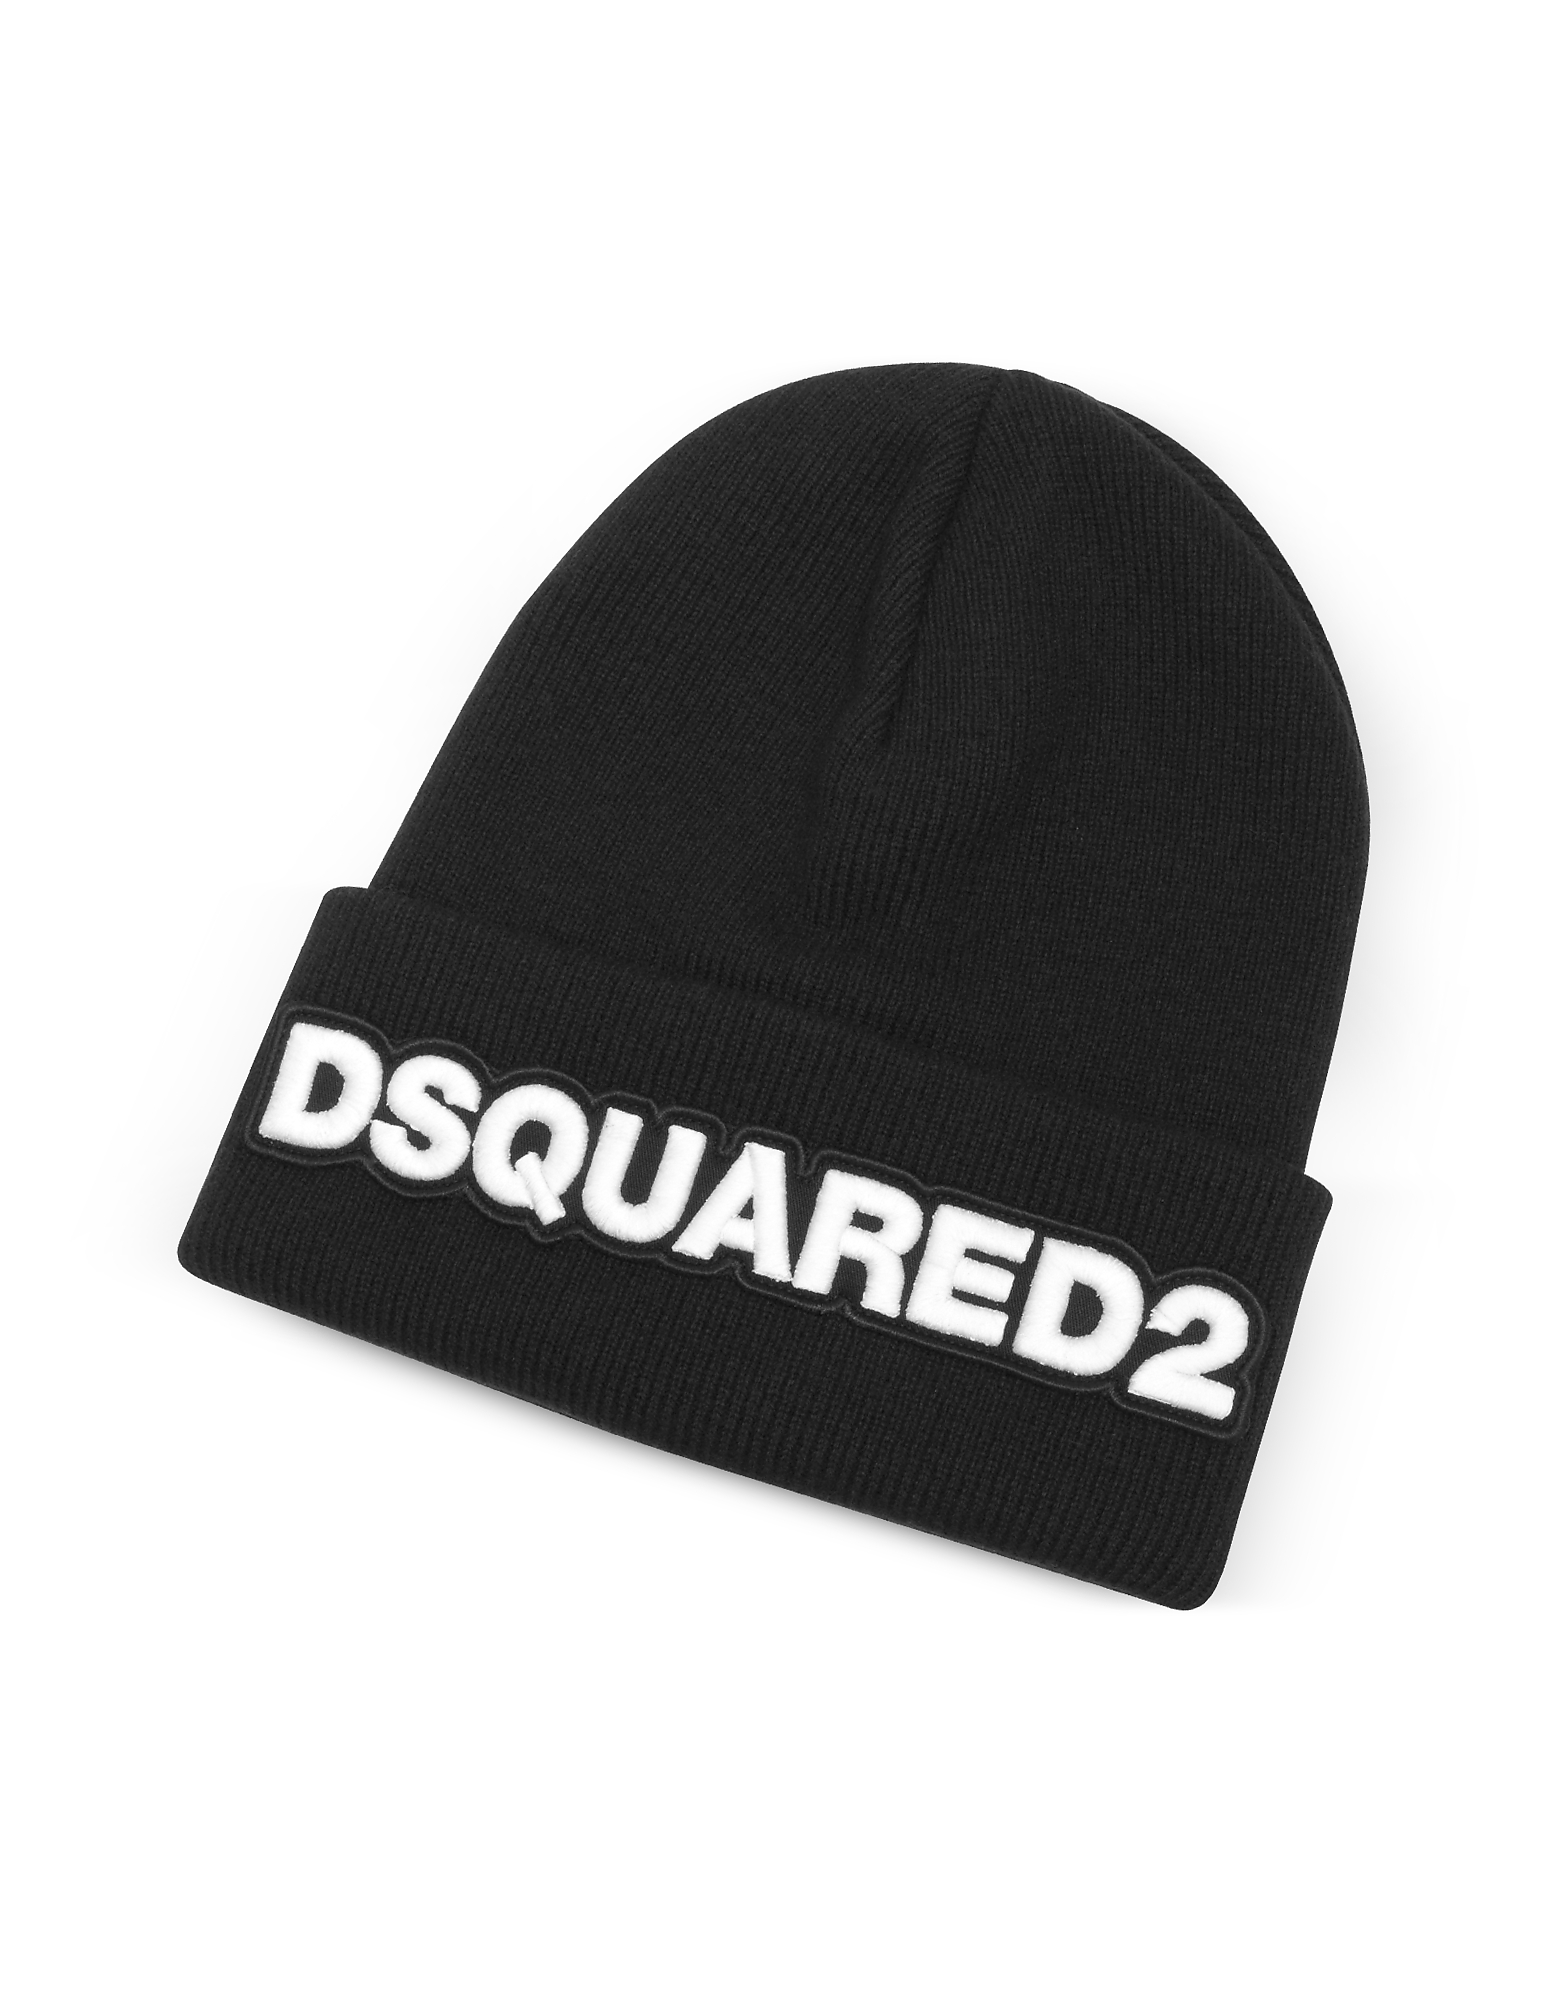 Embroidered Logo Black Wool Beanie